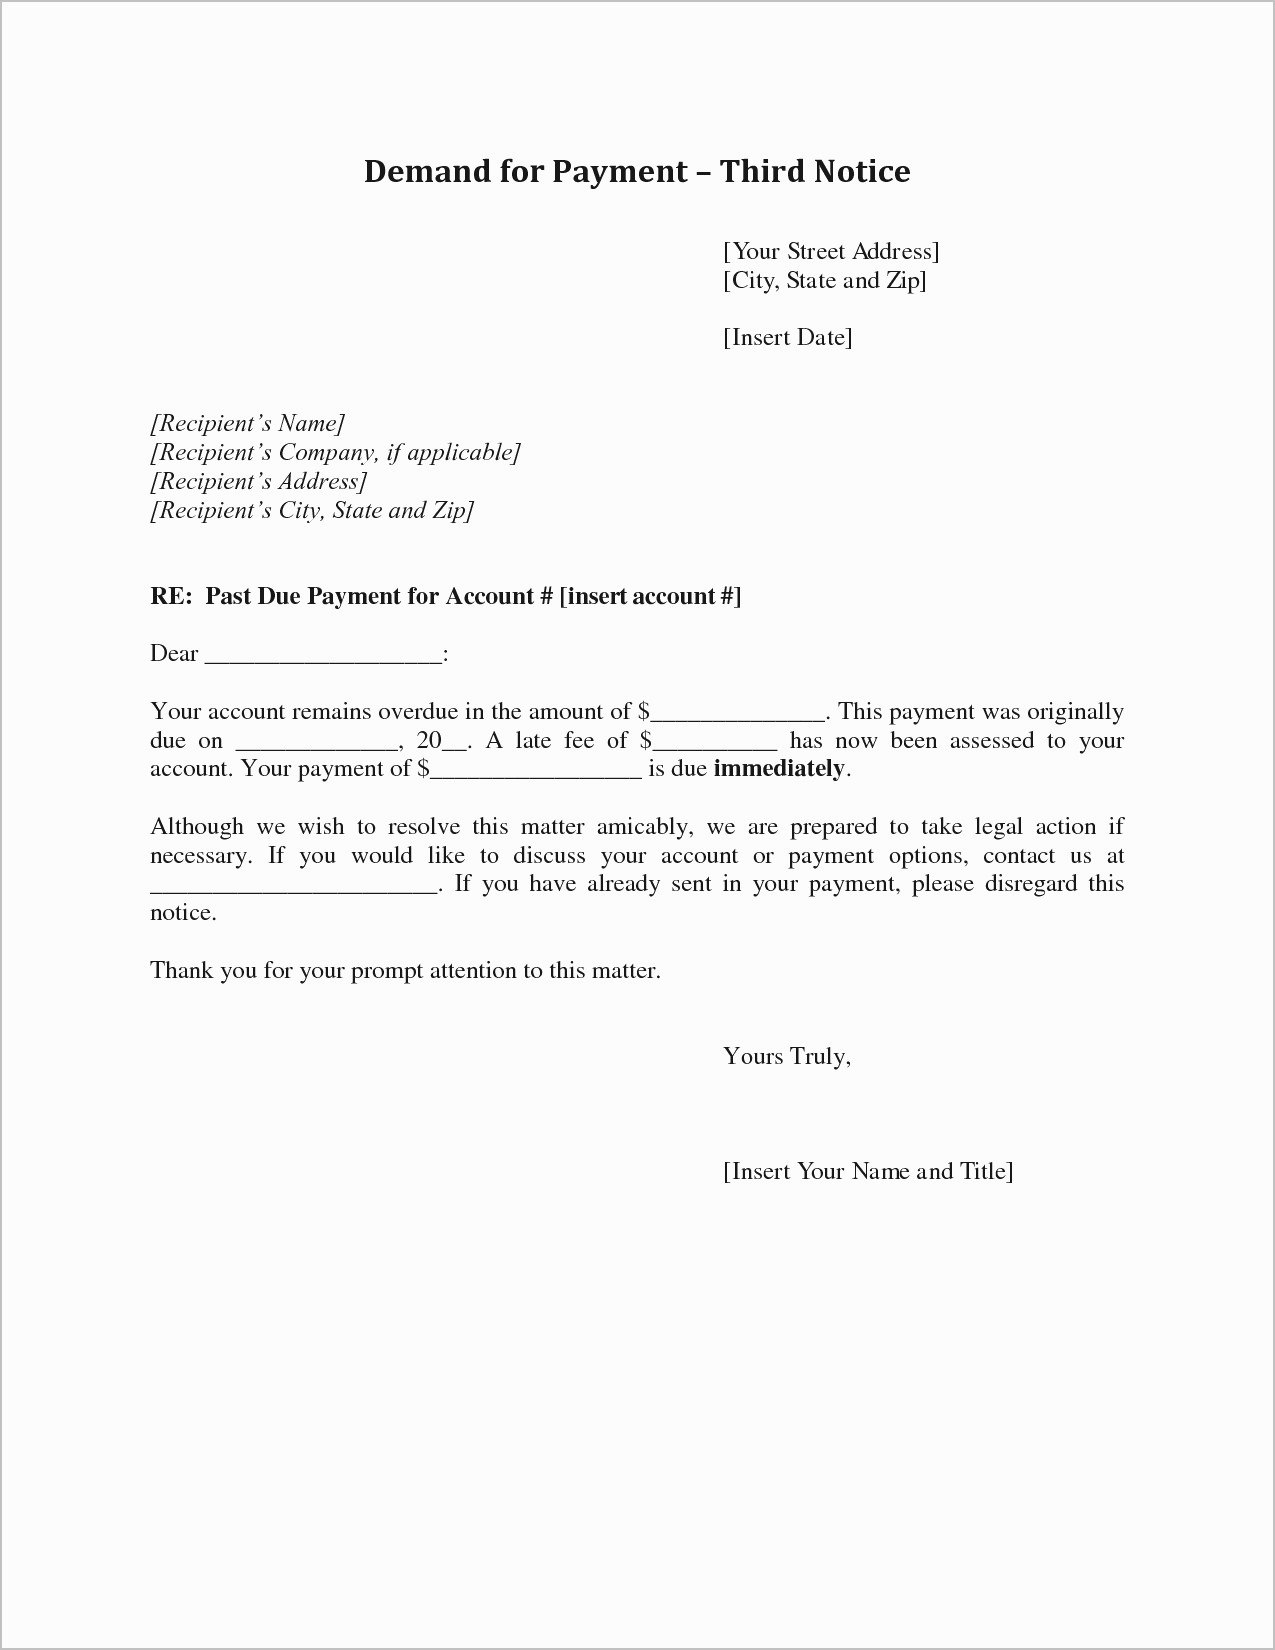 Demand for Payment Letter Template Free Examples